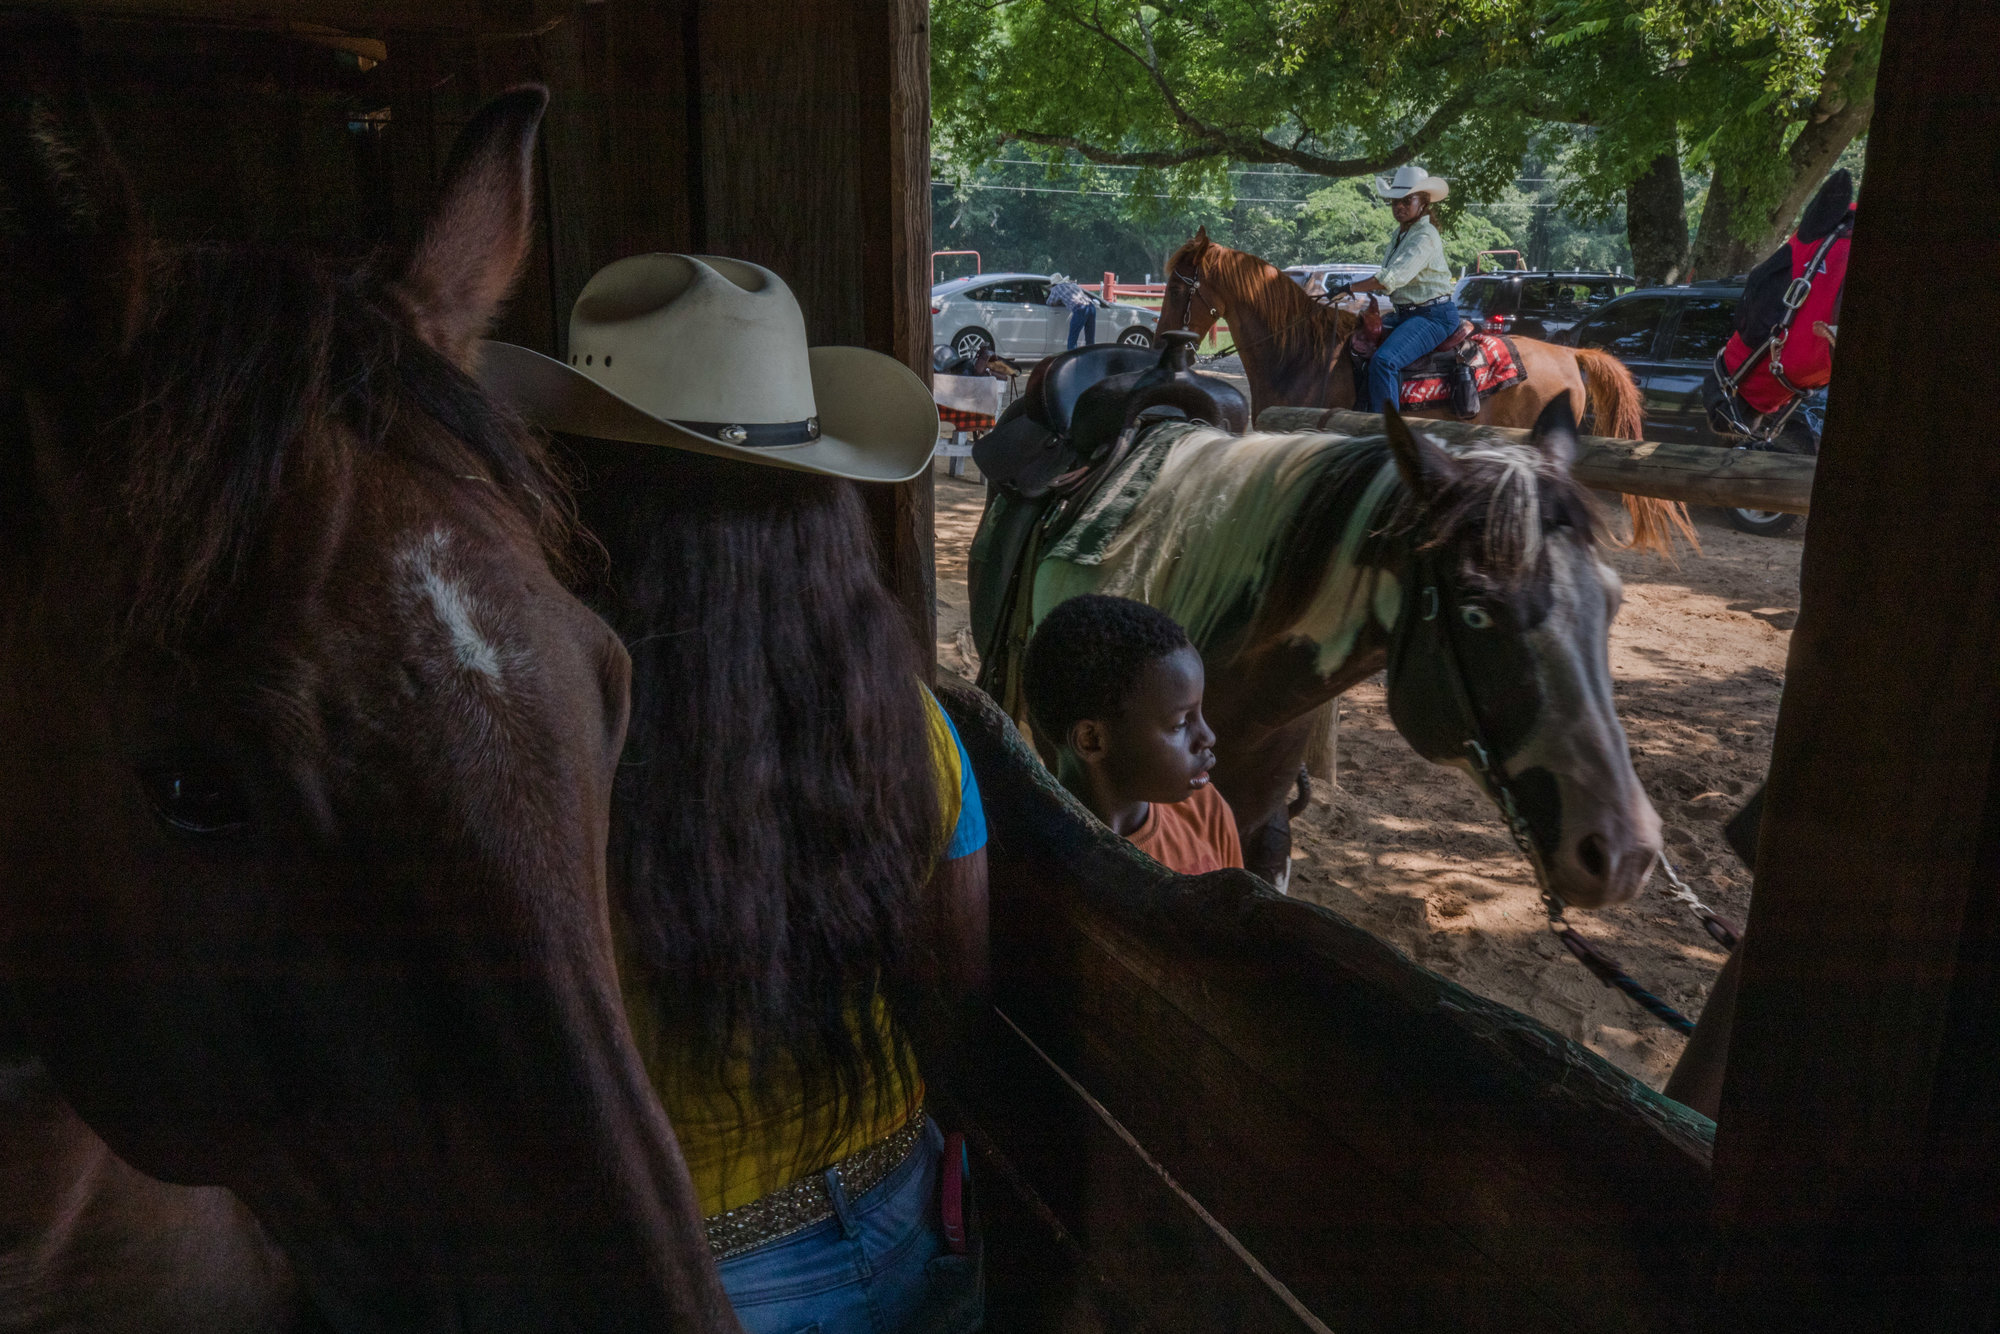 Members of the Black Cultural Enlightenment Society and of the Myers family prepare for the 23rd annual Black Cowboy Festival and Rodeo at Greenfield Farms on Saturday. Greenfield Farms sits on land that Sandra Myers' family once sharecropped and in 1991 Sandra and Mark, her husband, bought the land back. The festival, which is one of the only of its kind in the country, has happened almost every year since. For more information or to purchase a ticket go to www.blackcowboyfestival.net or call (